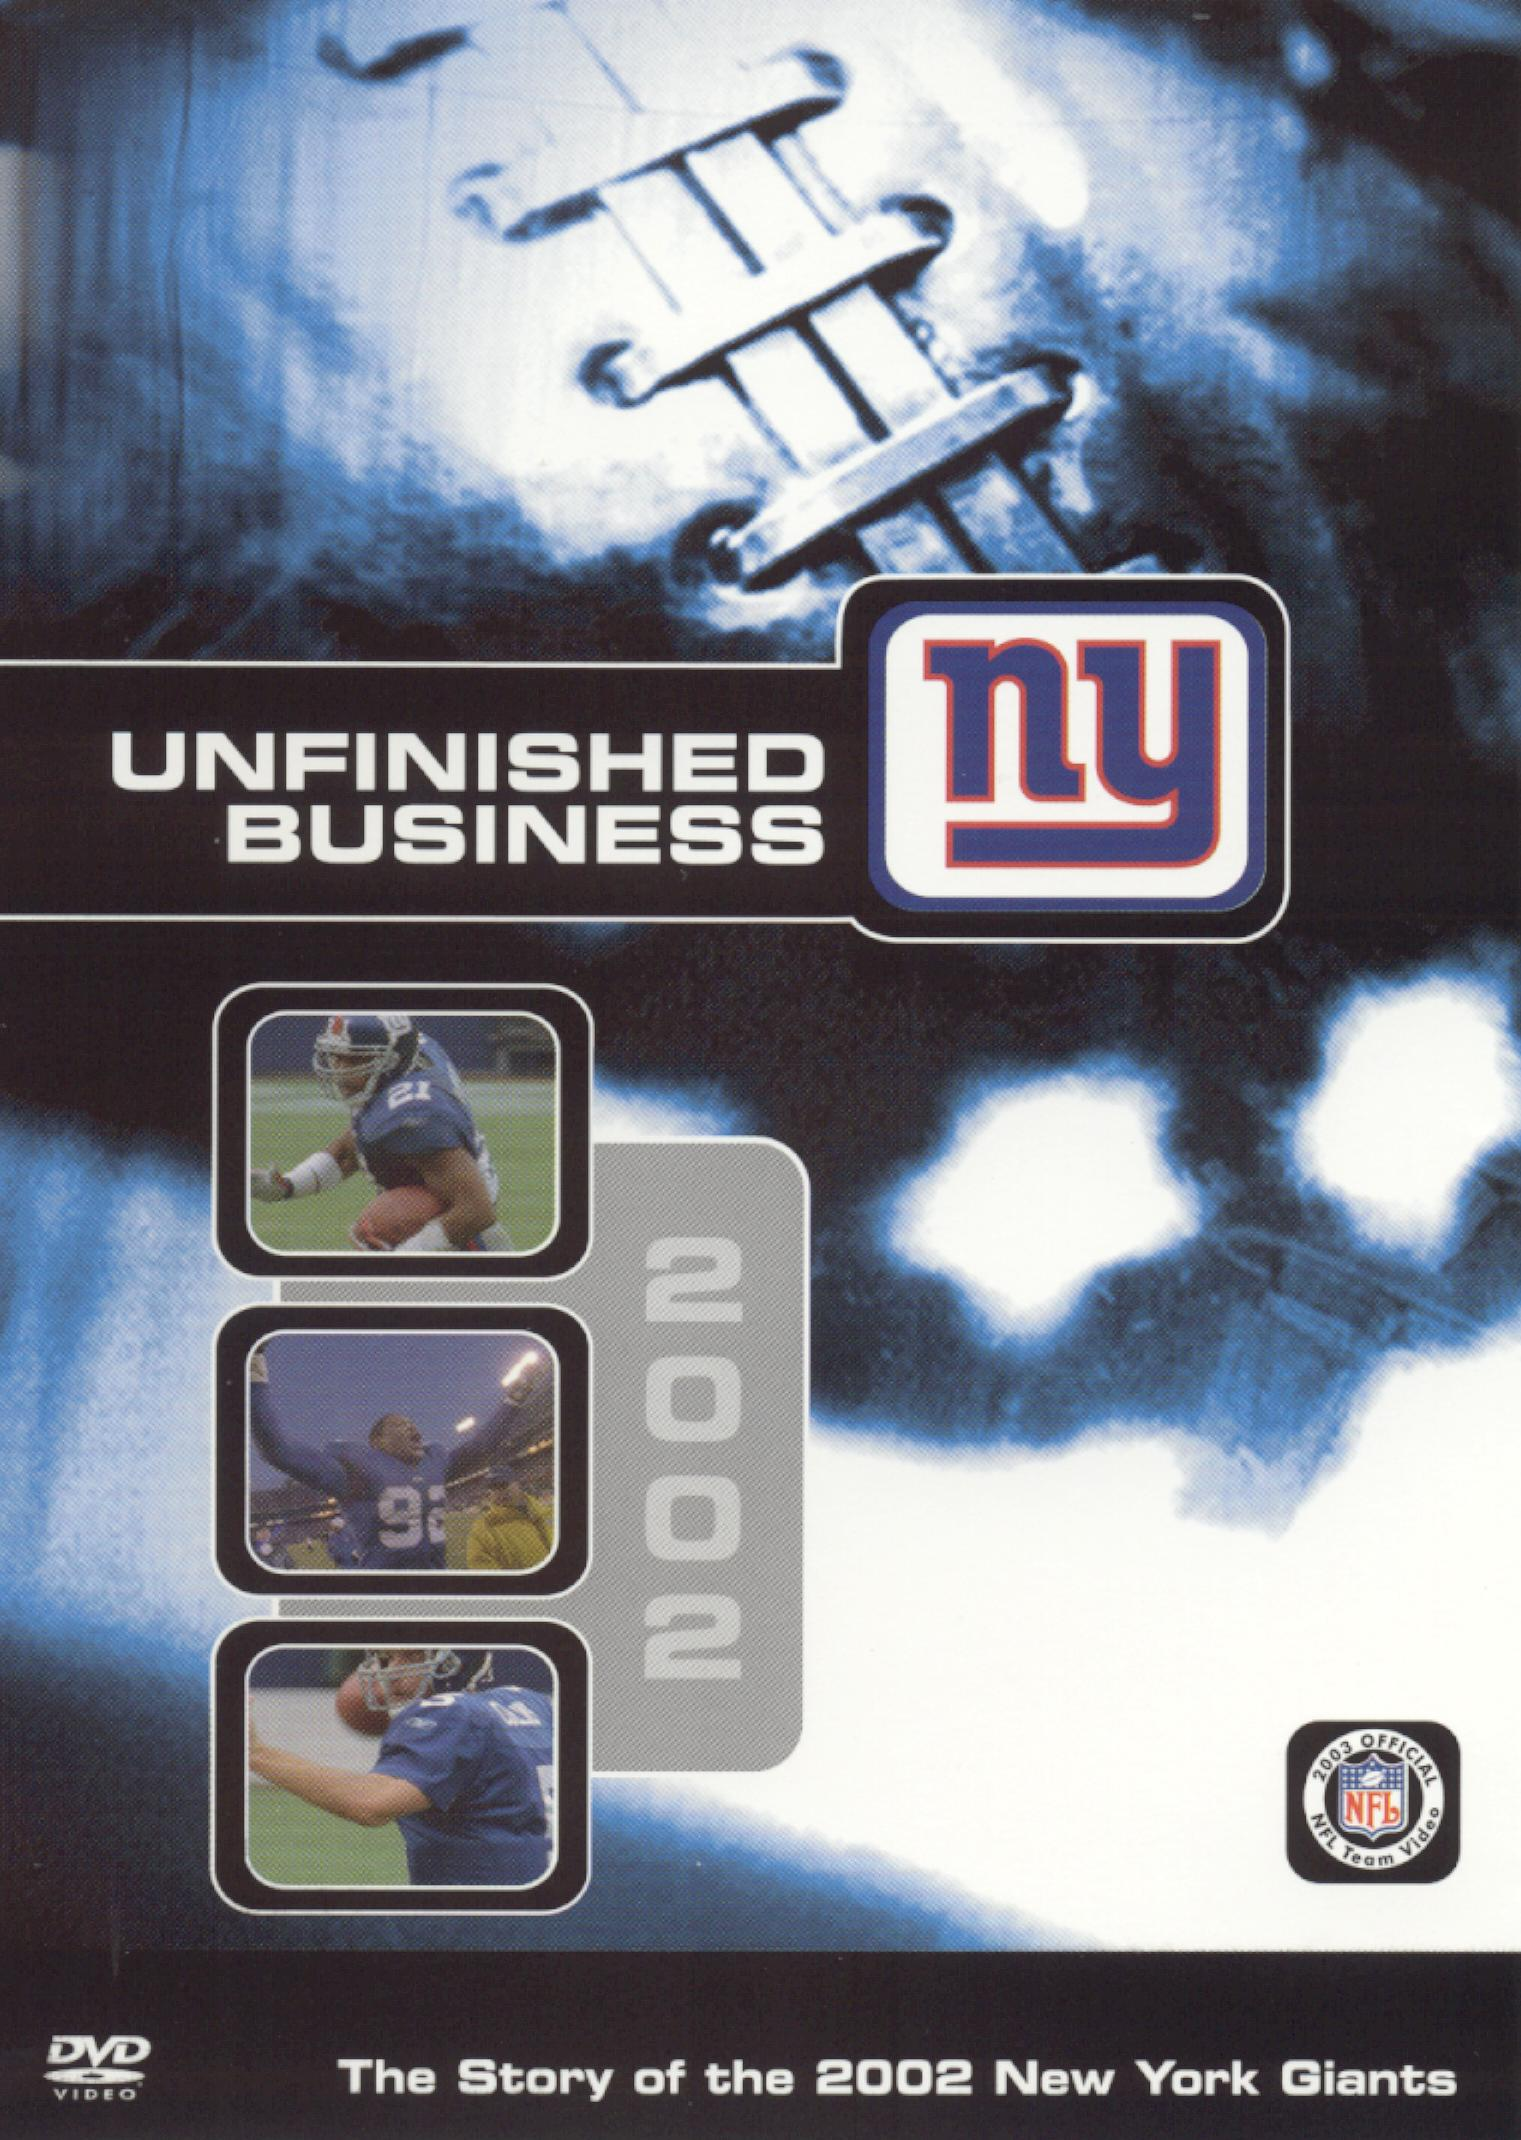 NFL: 2002 New York Giants Team Video - Unfinished Business